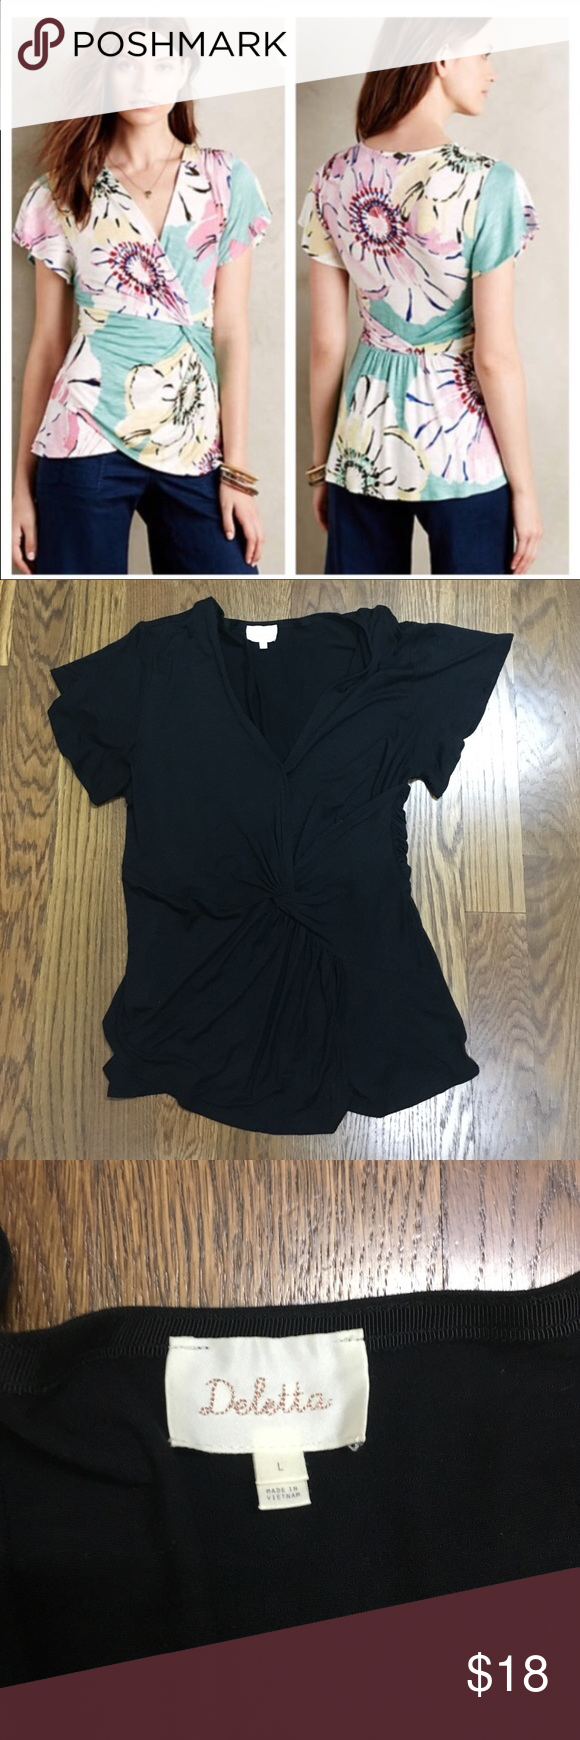 Black Deletta faux wrap shirt Black Deletta faux wrap shirt - please note this is black. I have the floral picture for reference and also selling the floral one. Beautiful design and flattering fit. EUC! Anthropologie Tops Blouses